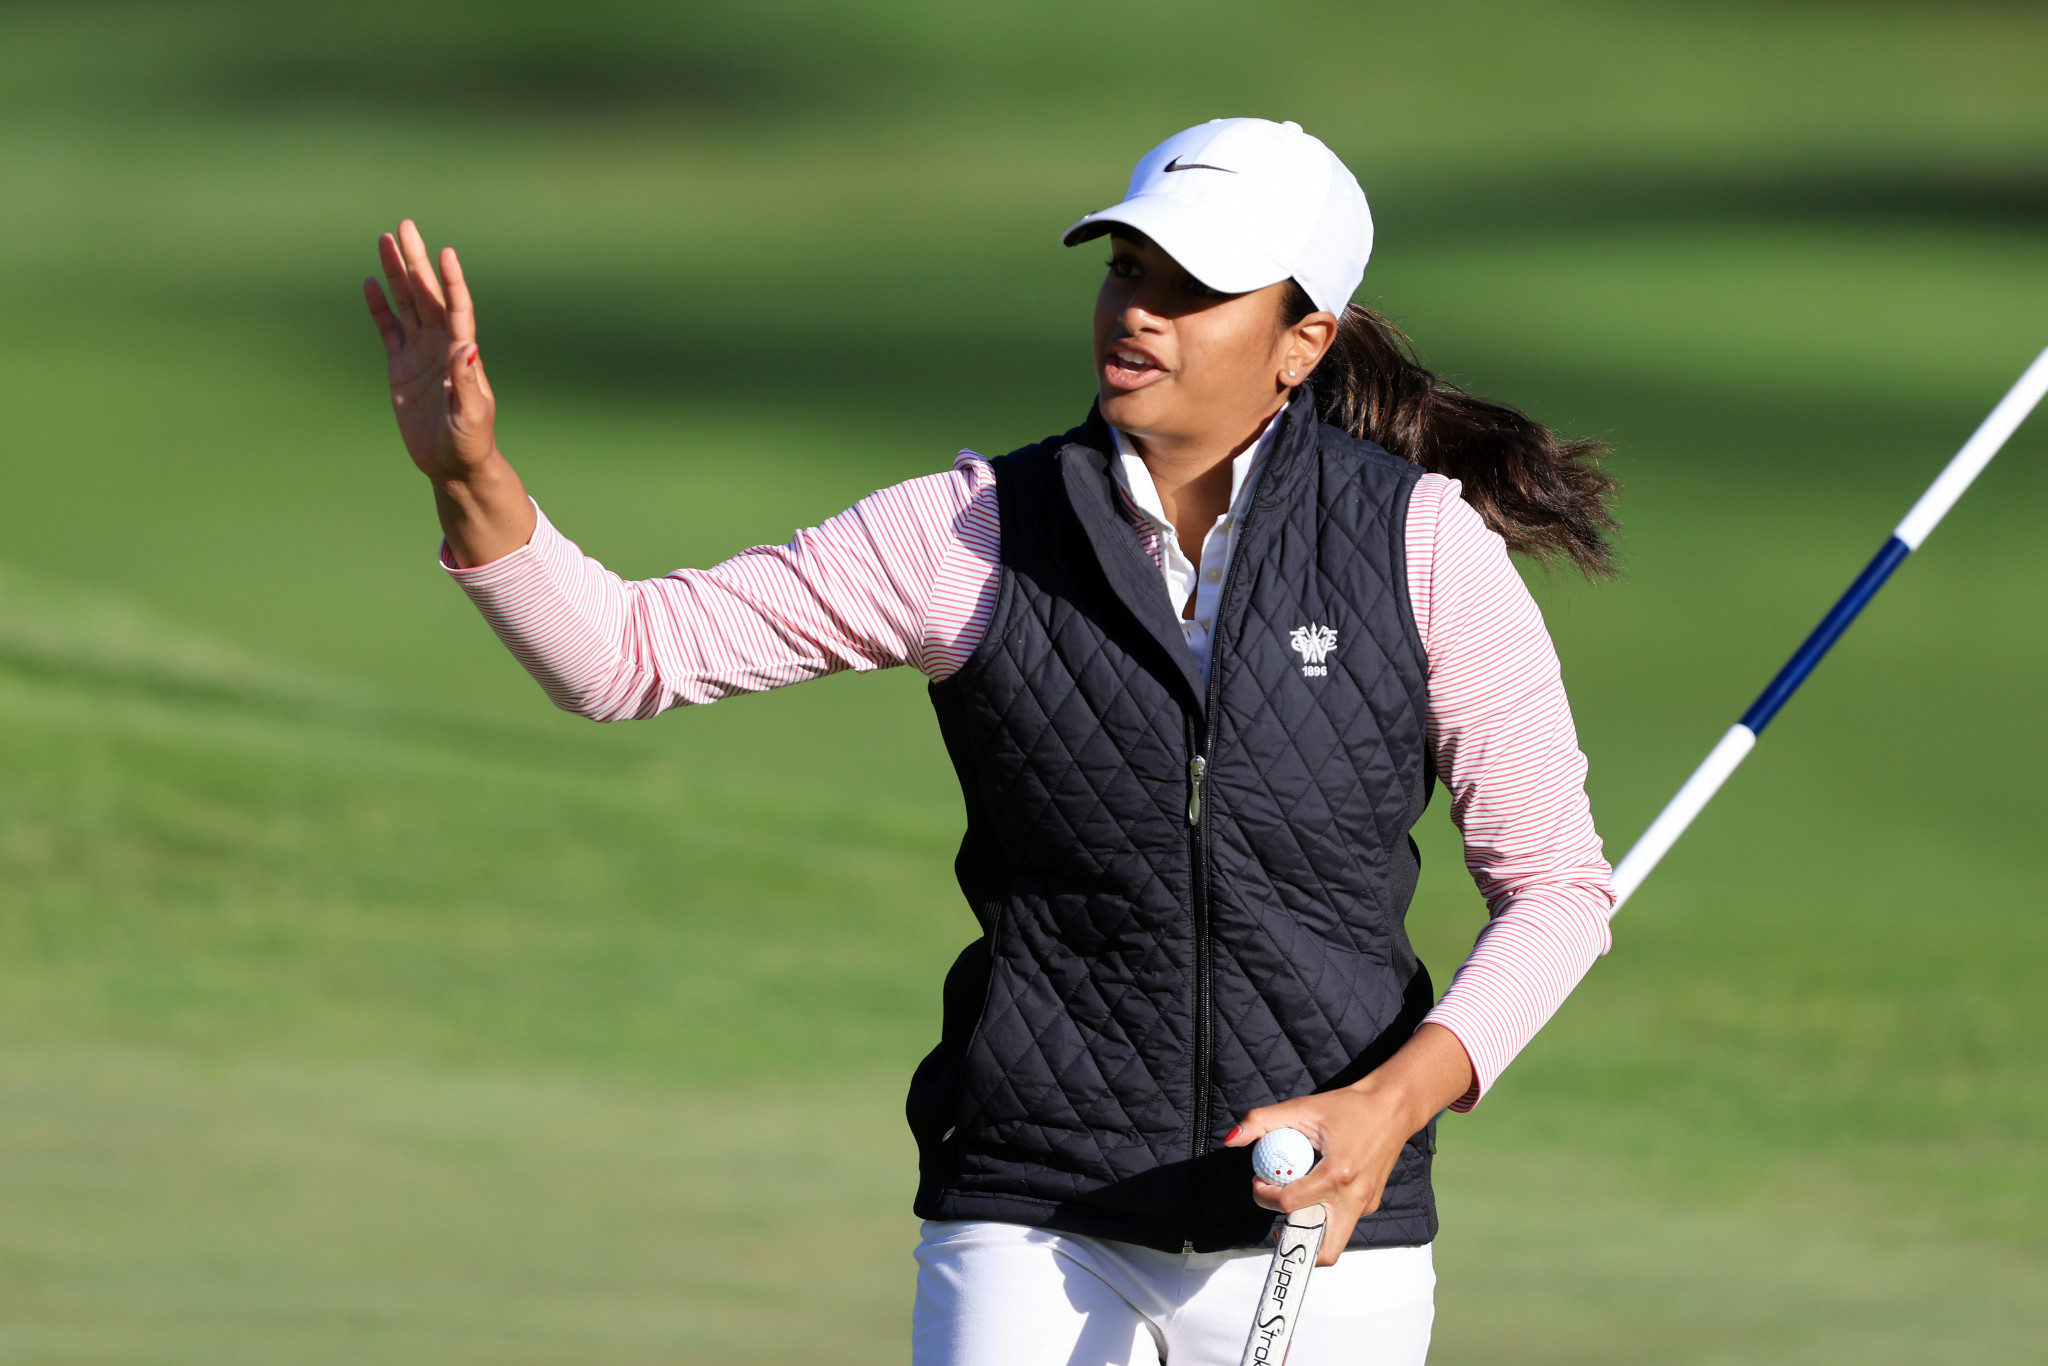 Amateur Ganne shares lead after first round of US Women's Open